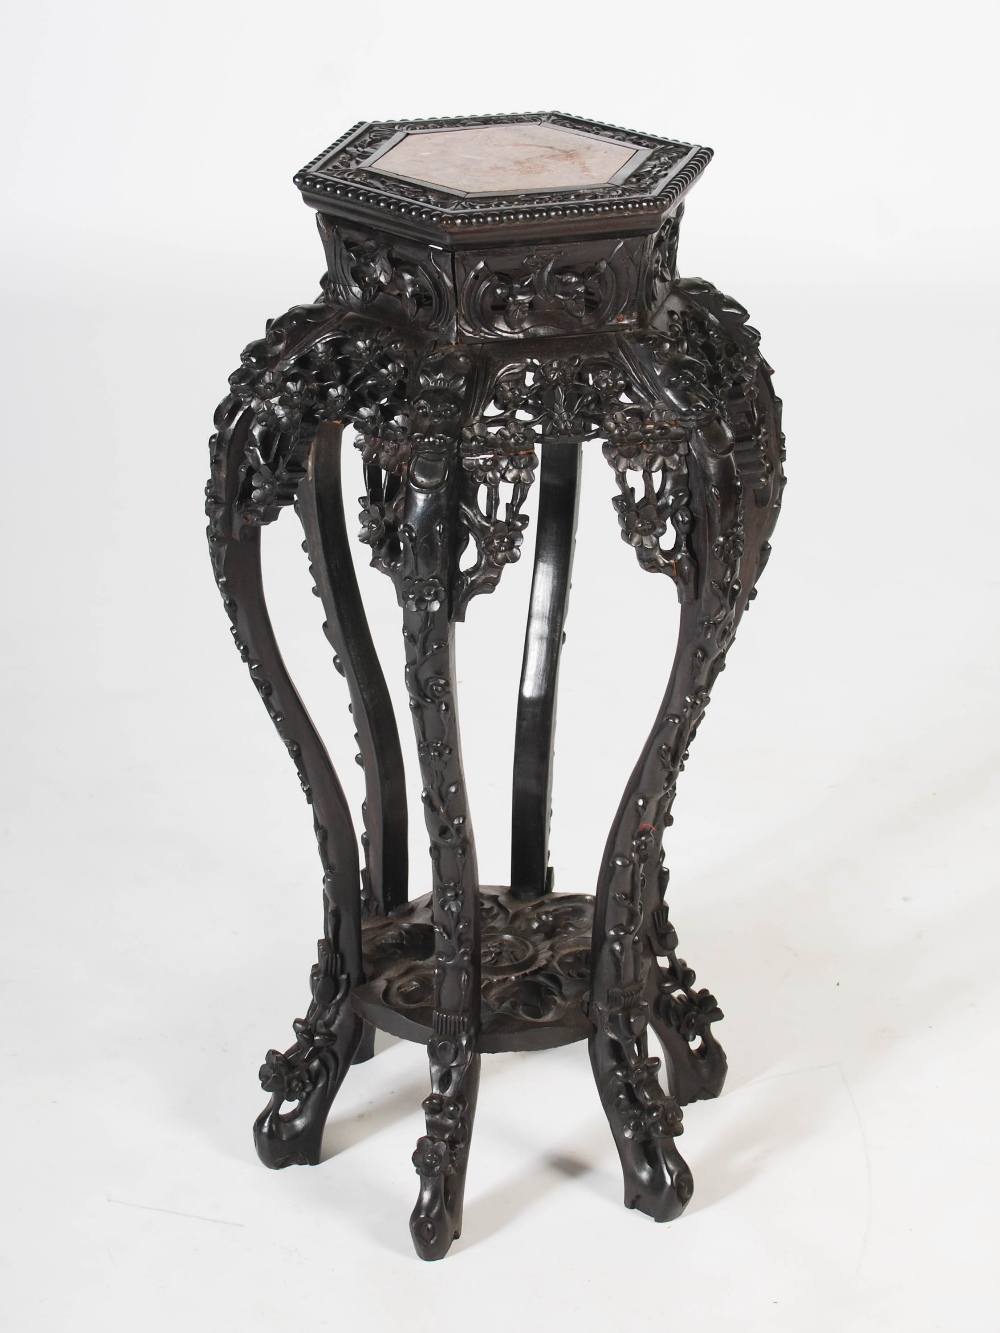 Lot 30 - A Chinese dark wood hexagonal shaped jardiniere stand, Qing Dynasty, the shaped top with a mottled